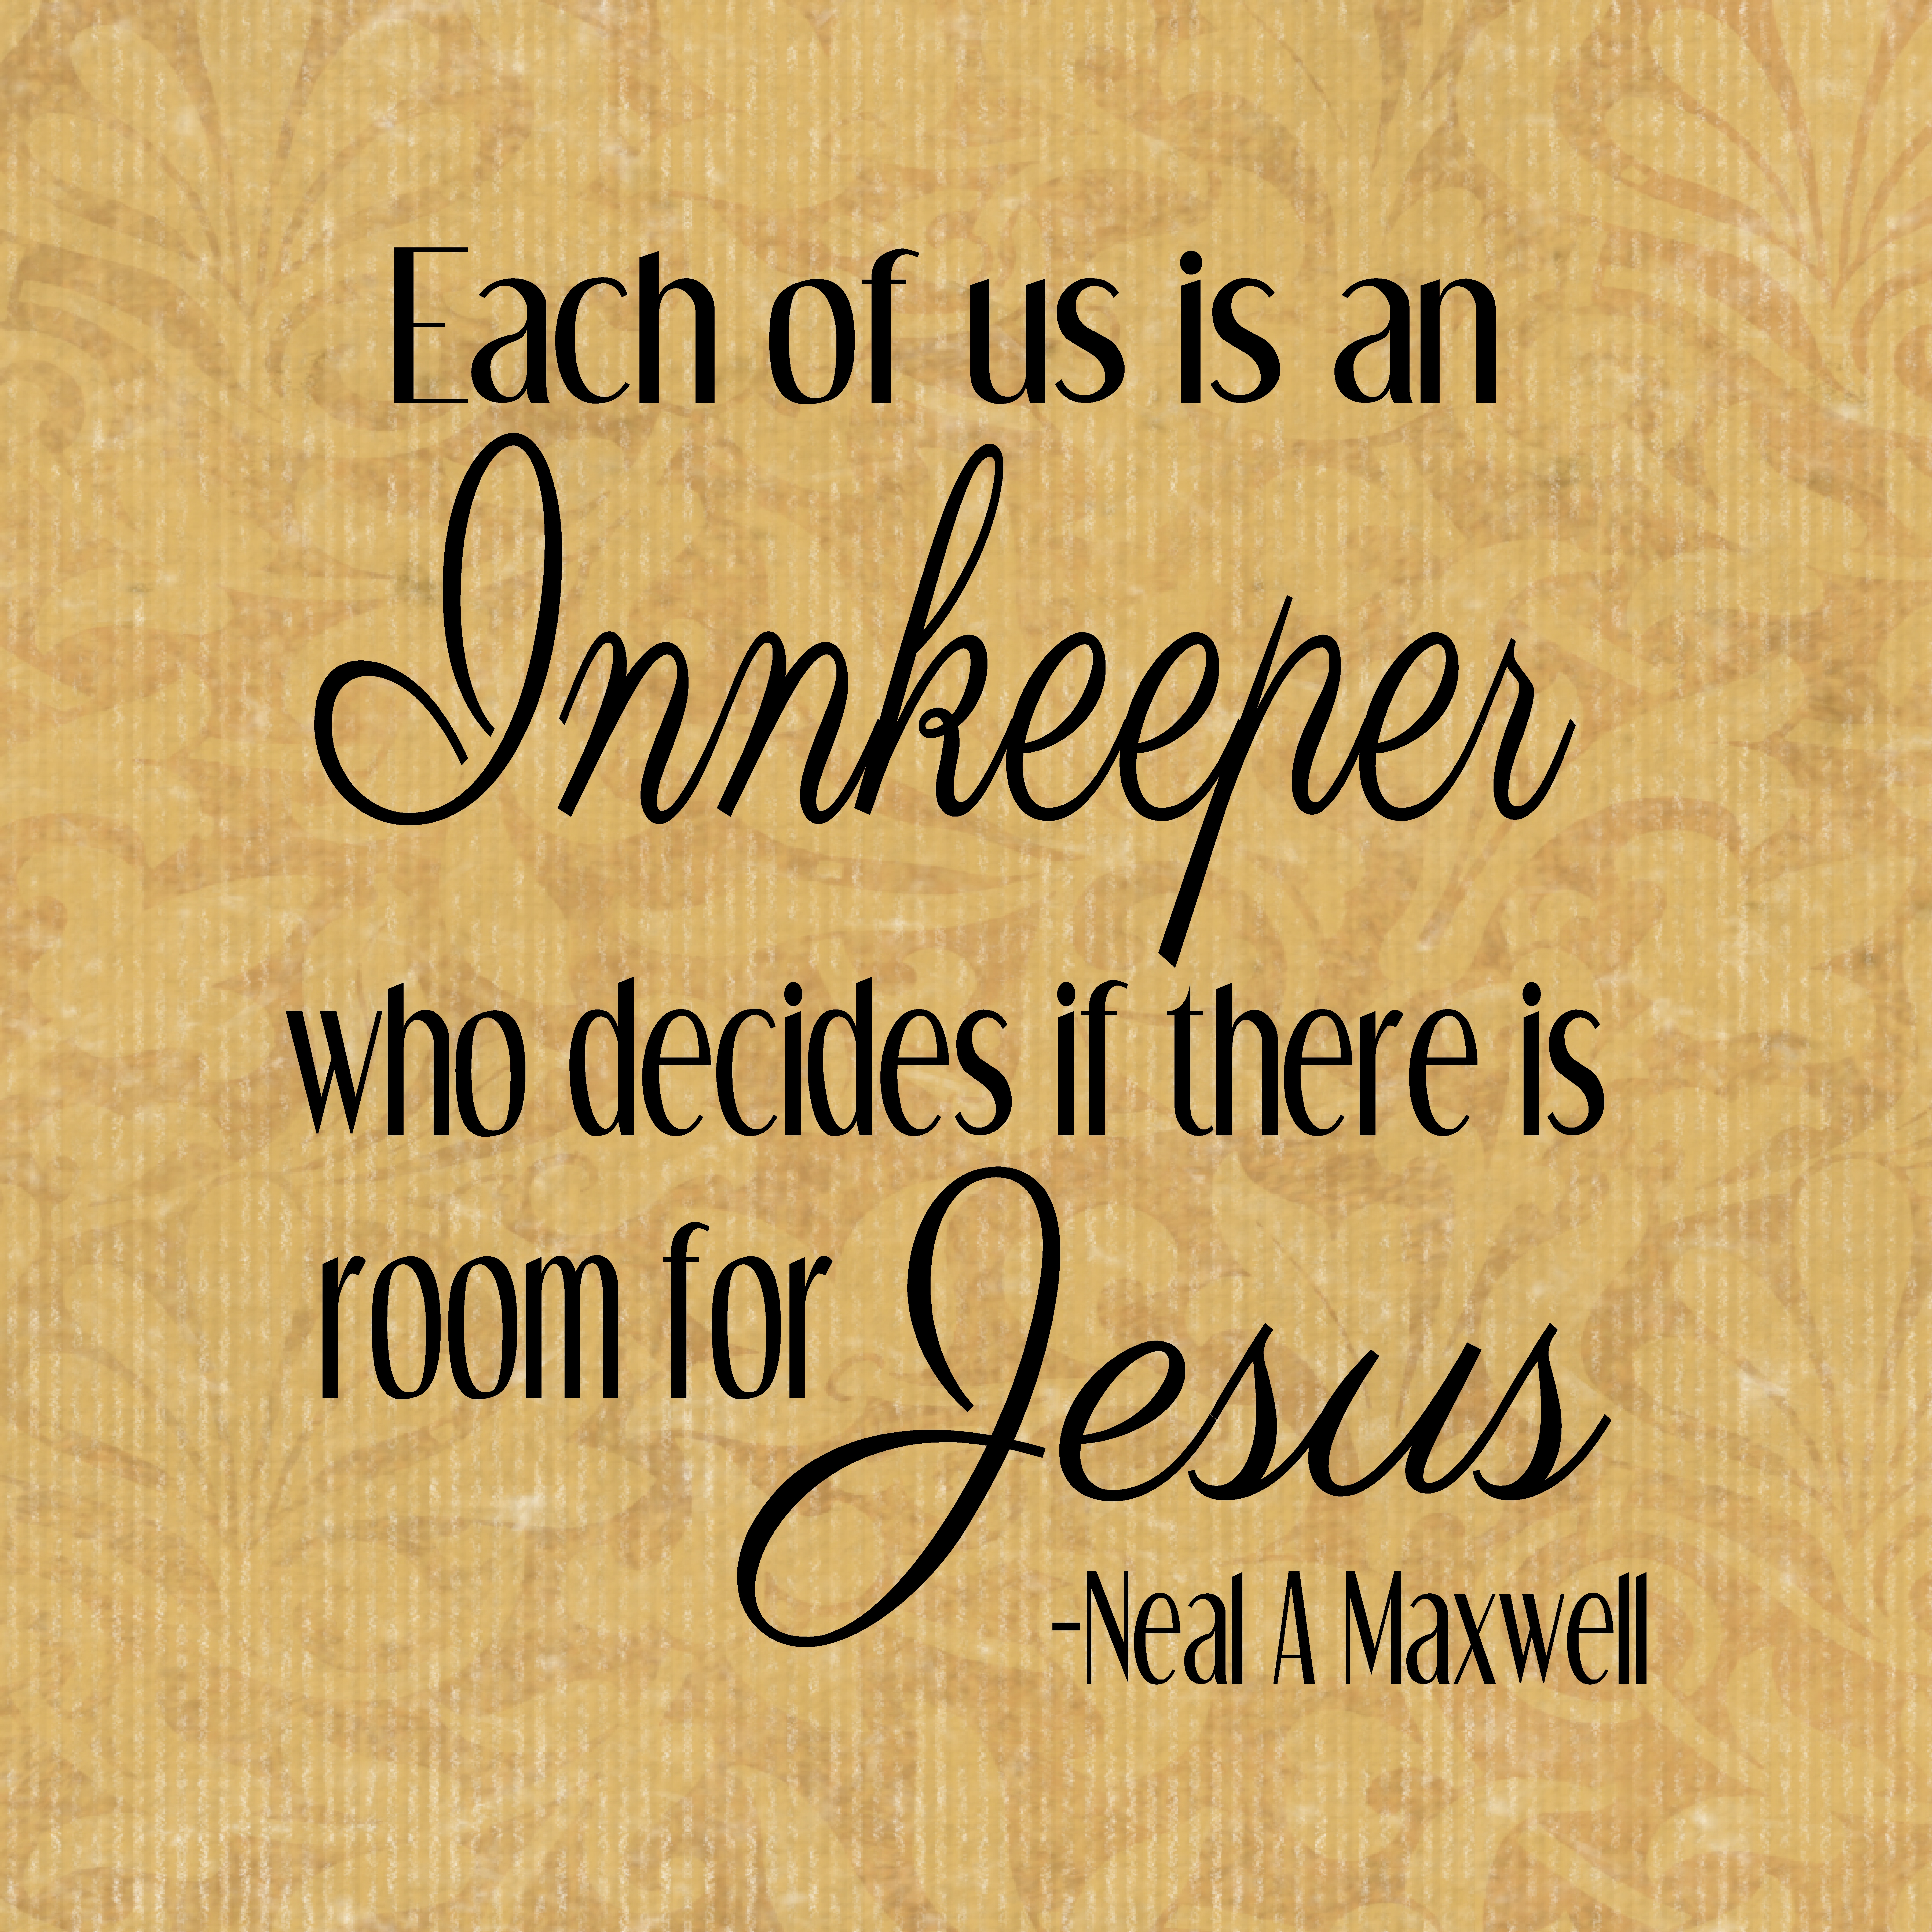 Quotes Jesus Each Of Us Is An Innkeeper Who Decides If There Is Room For Jesus